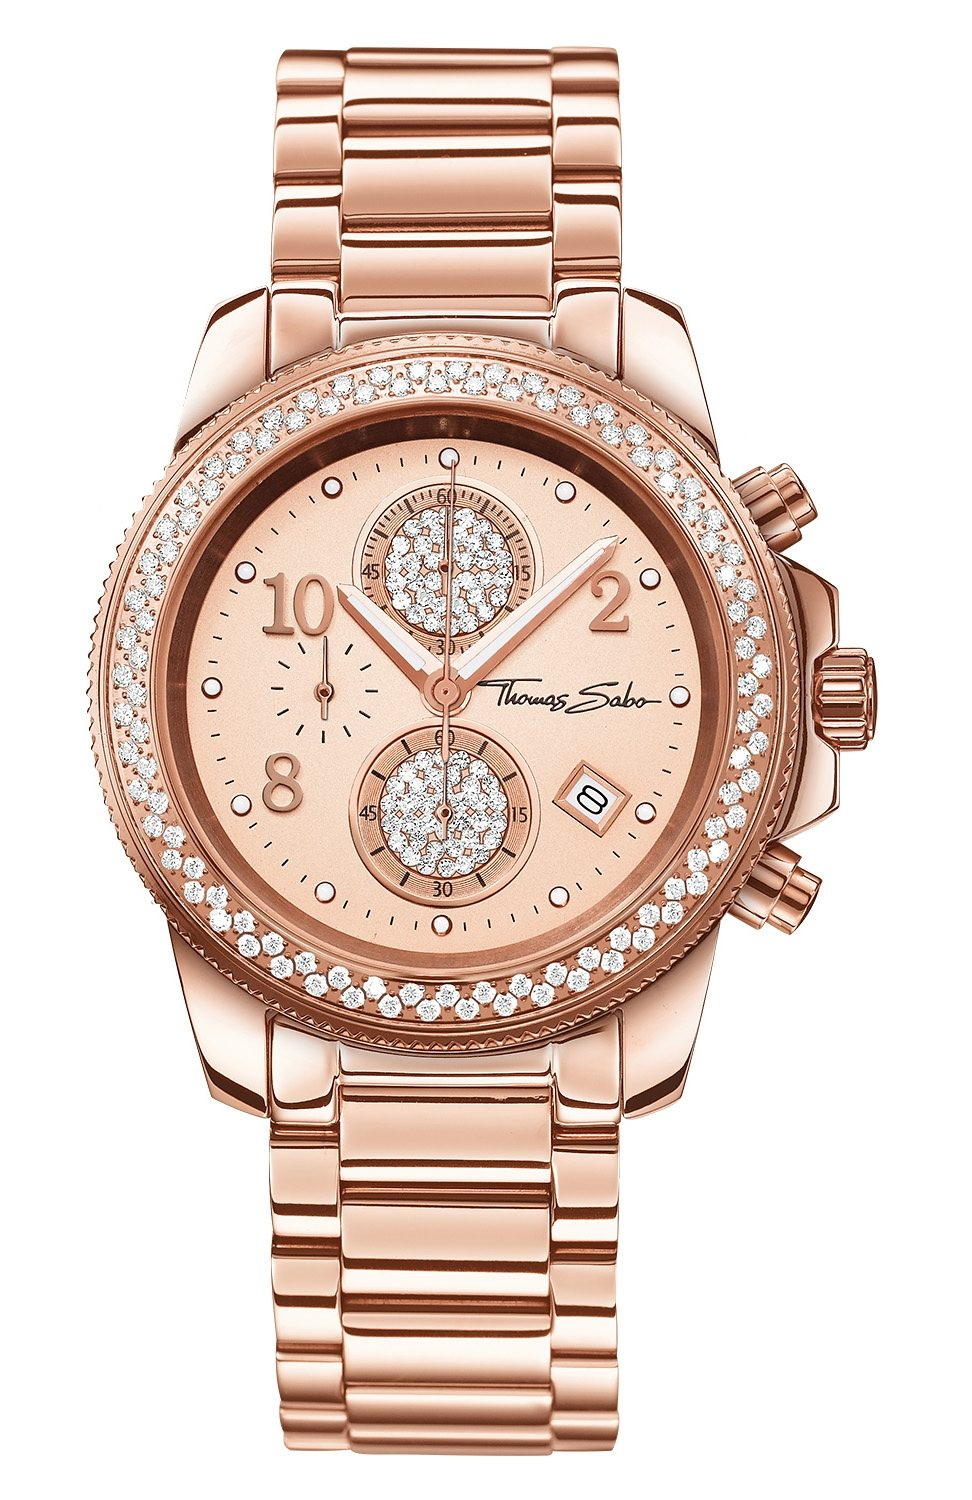 Thomas Sabo Chronograph »GLAM CHRONO, WA0202«